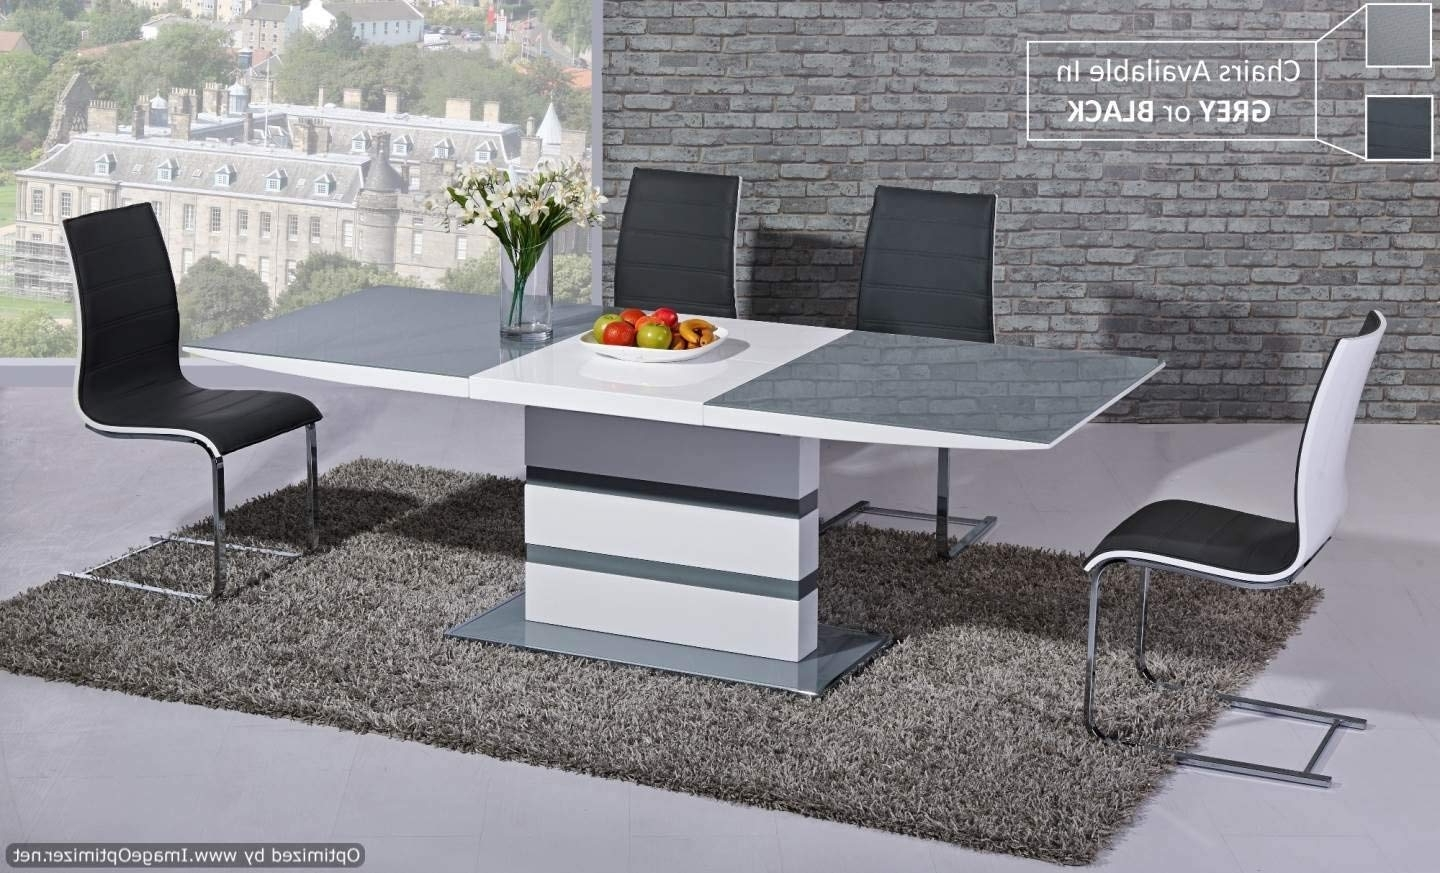 Most Recent Furniture Mill Outlet Arctic Extending Dining Table In Grey From With High Gloss White Extending Dining Tables (View 16 of 25)